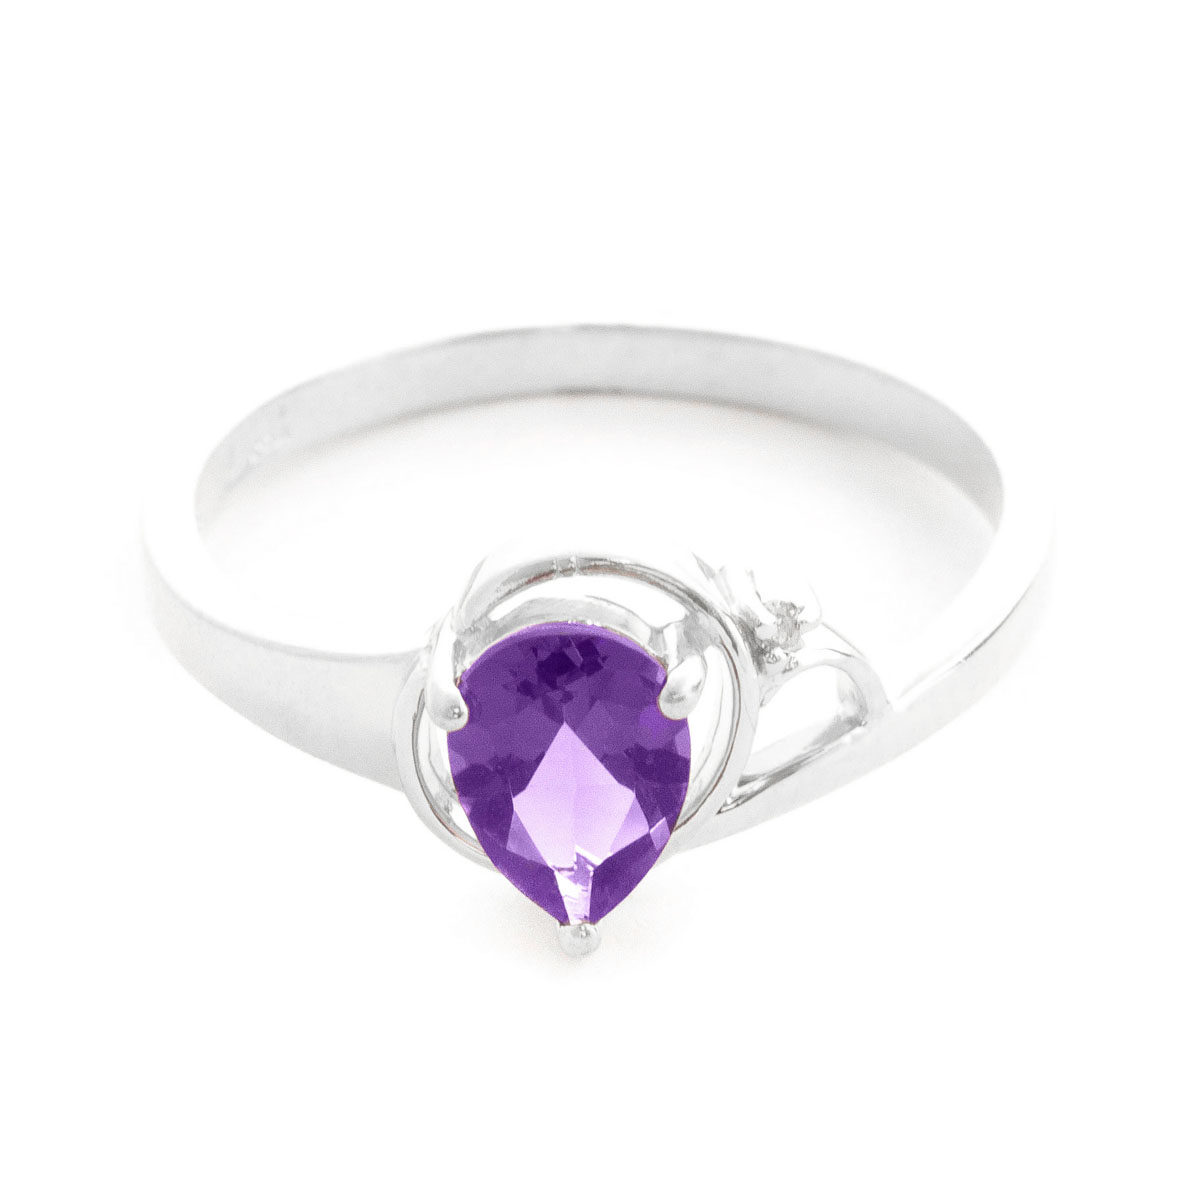 Amethyst & Diamond Glow Ring in 18ct White Gold